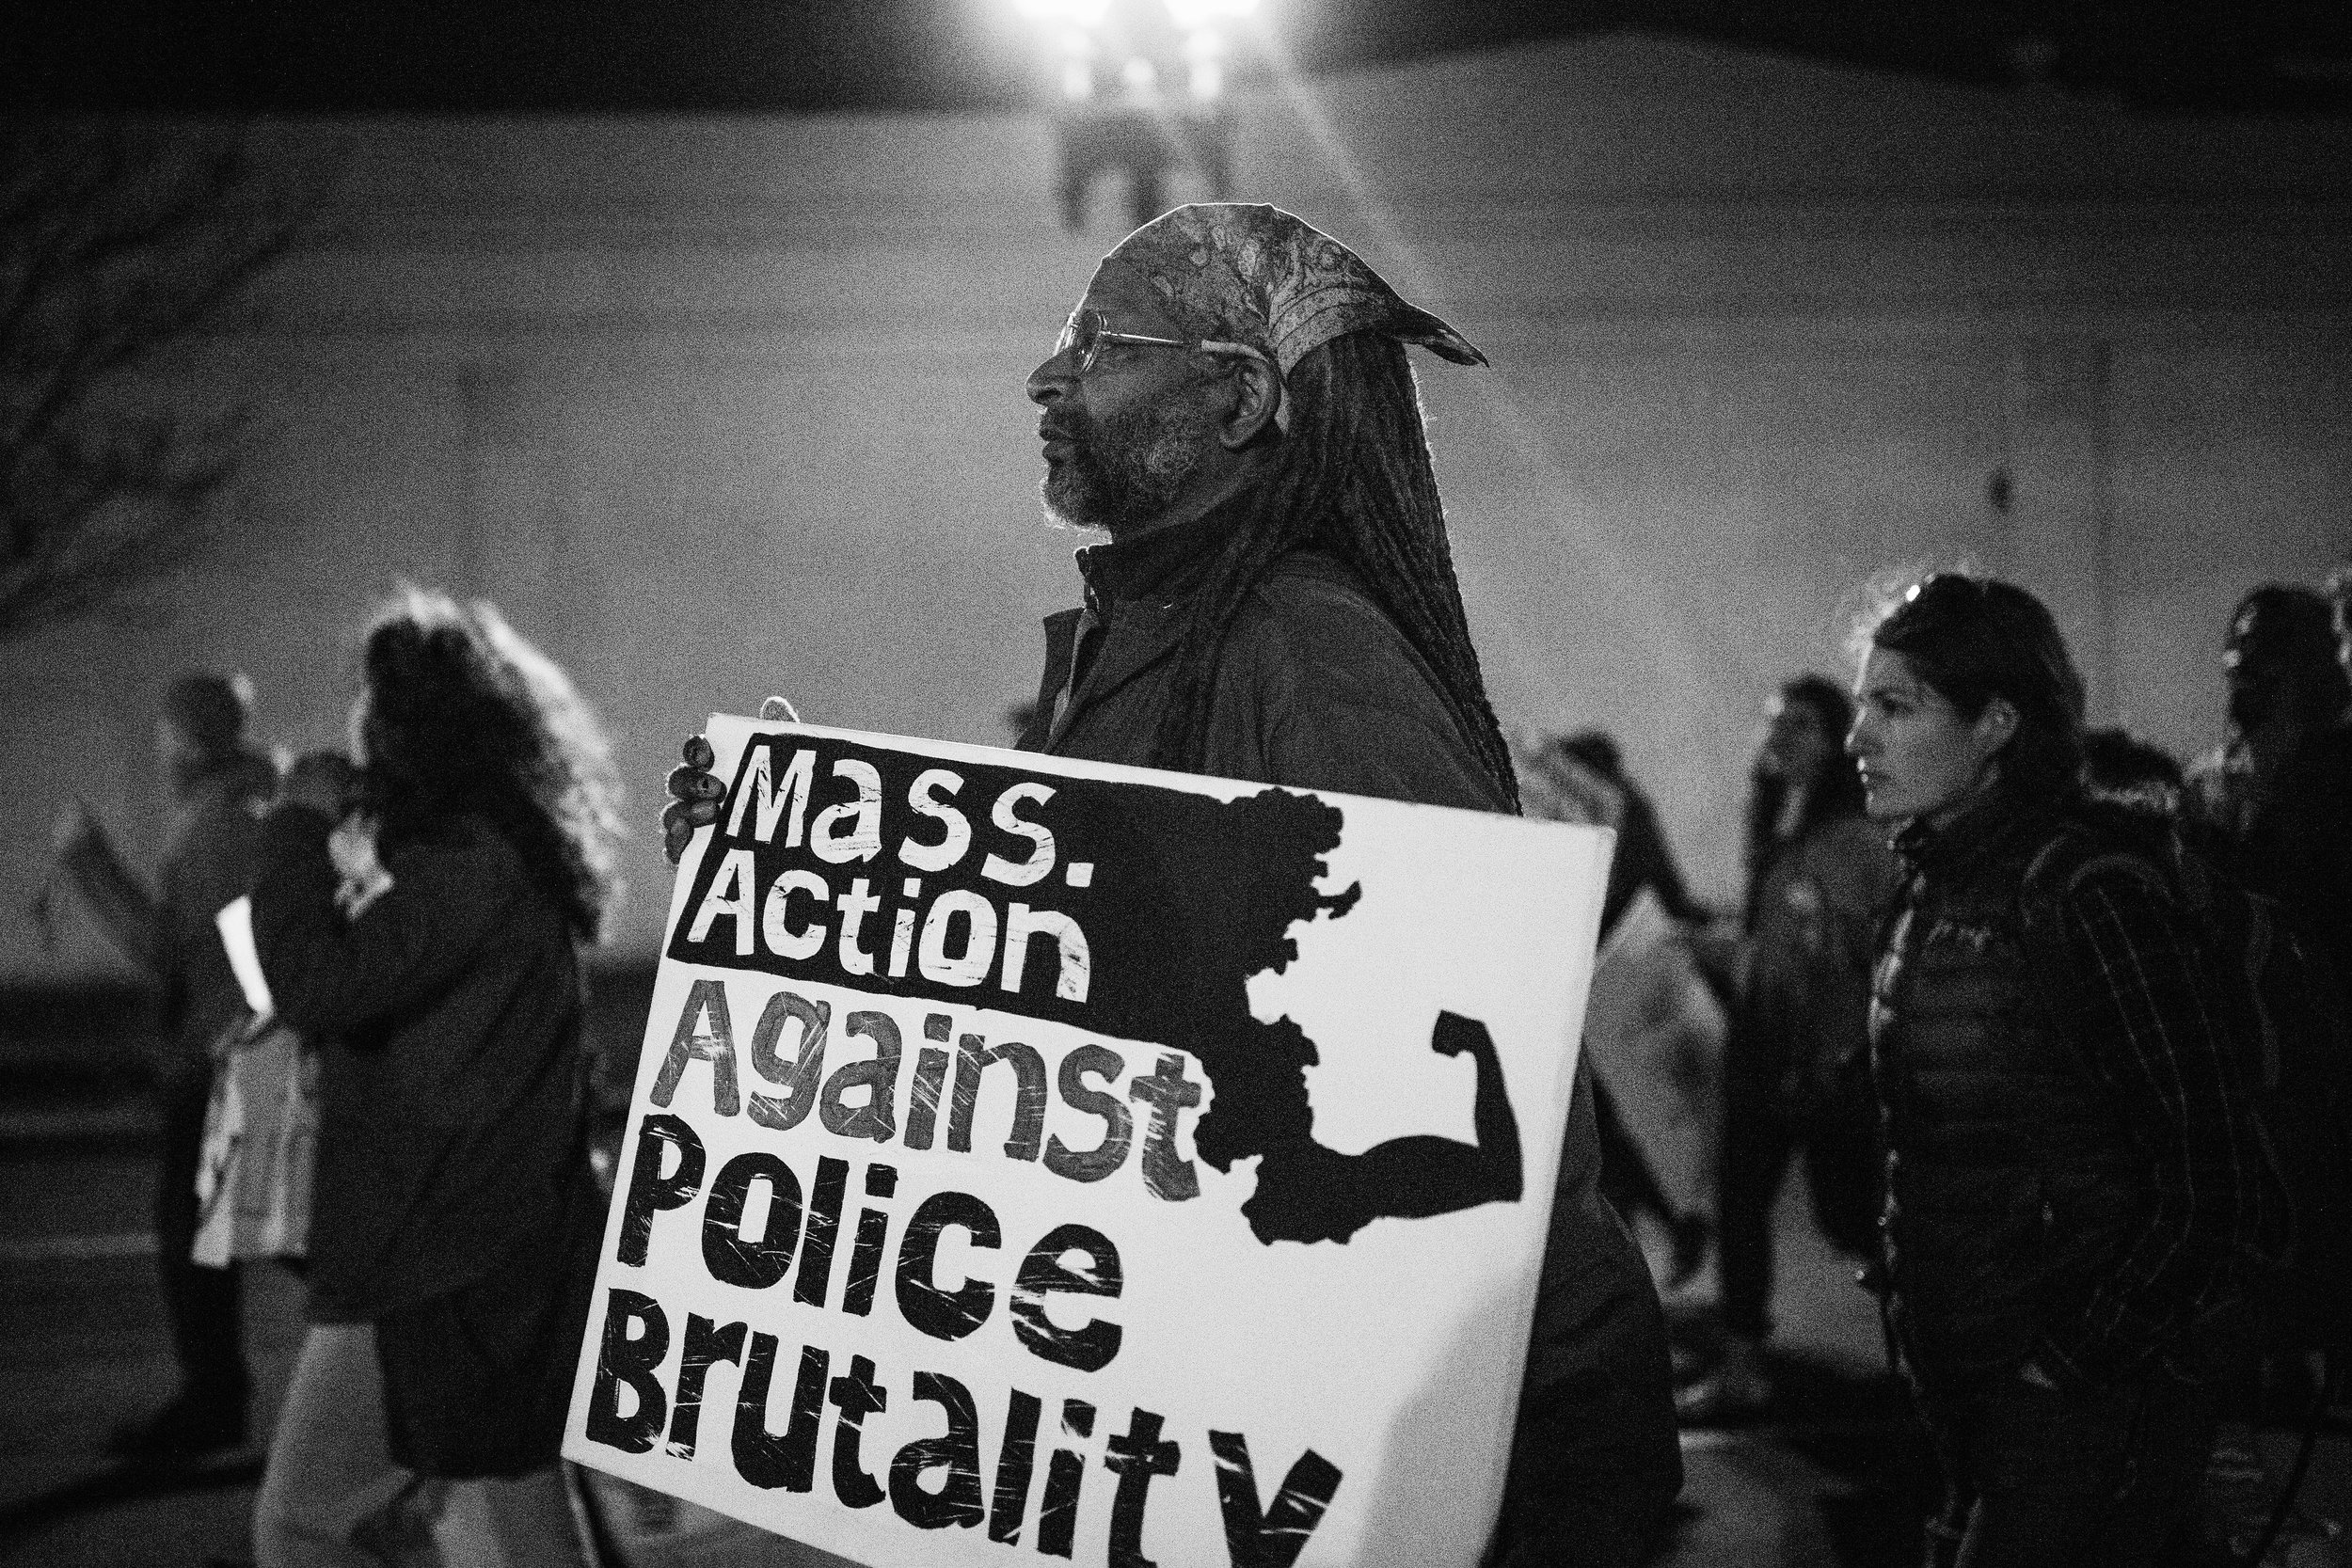 Photo description: A demonstrator marches holding a 'Mass Action Against Brutality' sign. MAAPB organized a Not1More Rally Against Police Brutality at the Boston Police Headquarters in Roxbury on April 4, 2018. (Credit: Emily Goldhammer)